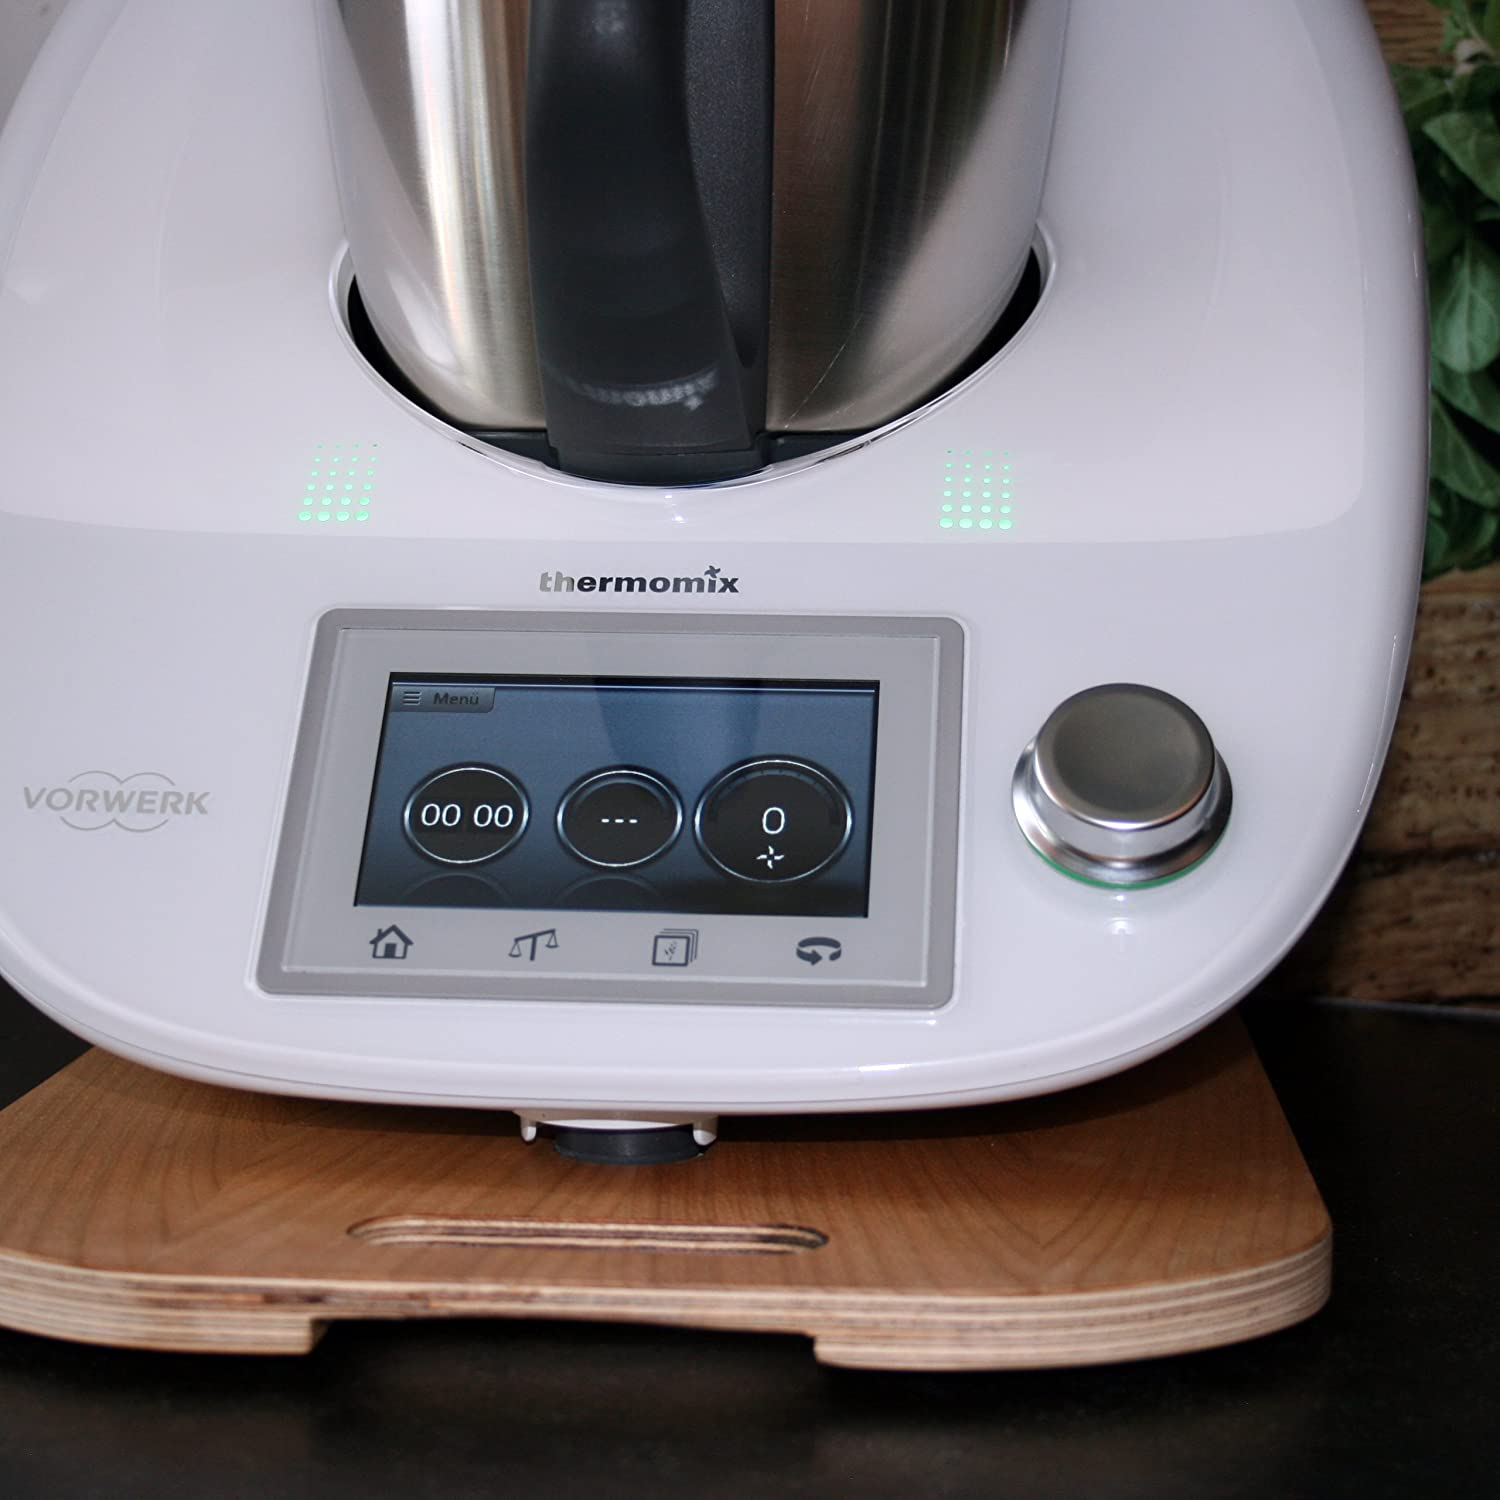 tglider Pro 2 - Tabla deslizante, apto para Thermomix TM5: Amazon.es: Hogar